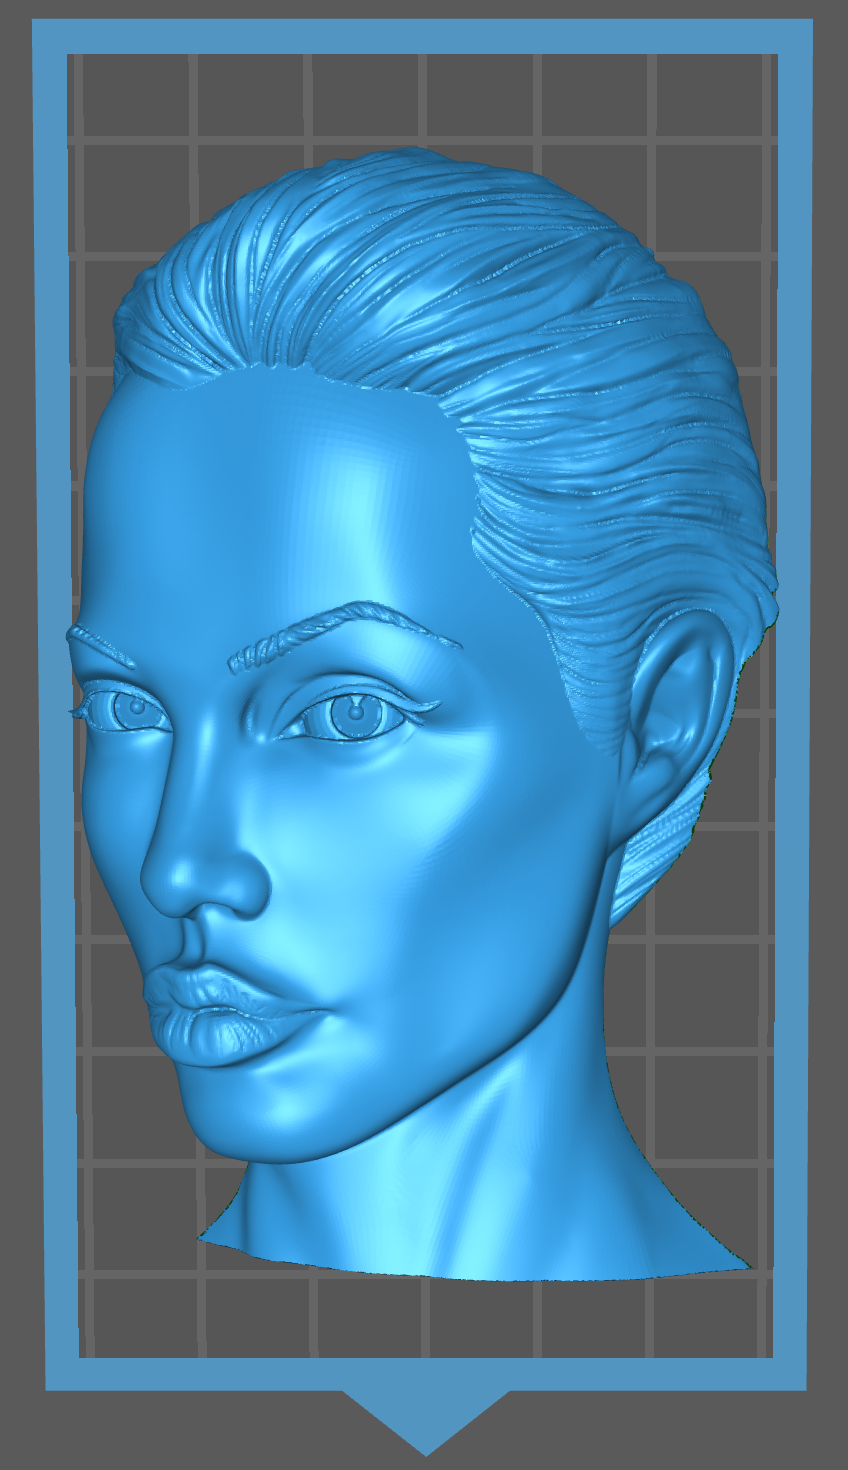 Screen Shot 2020-05-03 at 11.24.48 PM.png Download free STL file Angelina Jolie Tomb Raider Actress • 3D printing template, Hogheads3dPrinting